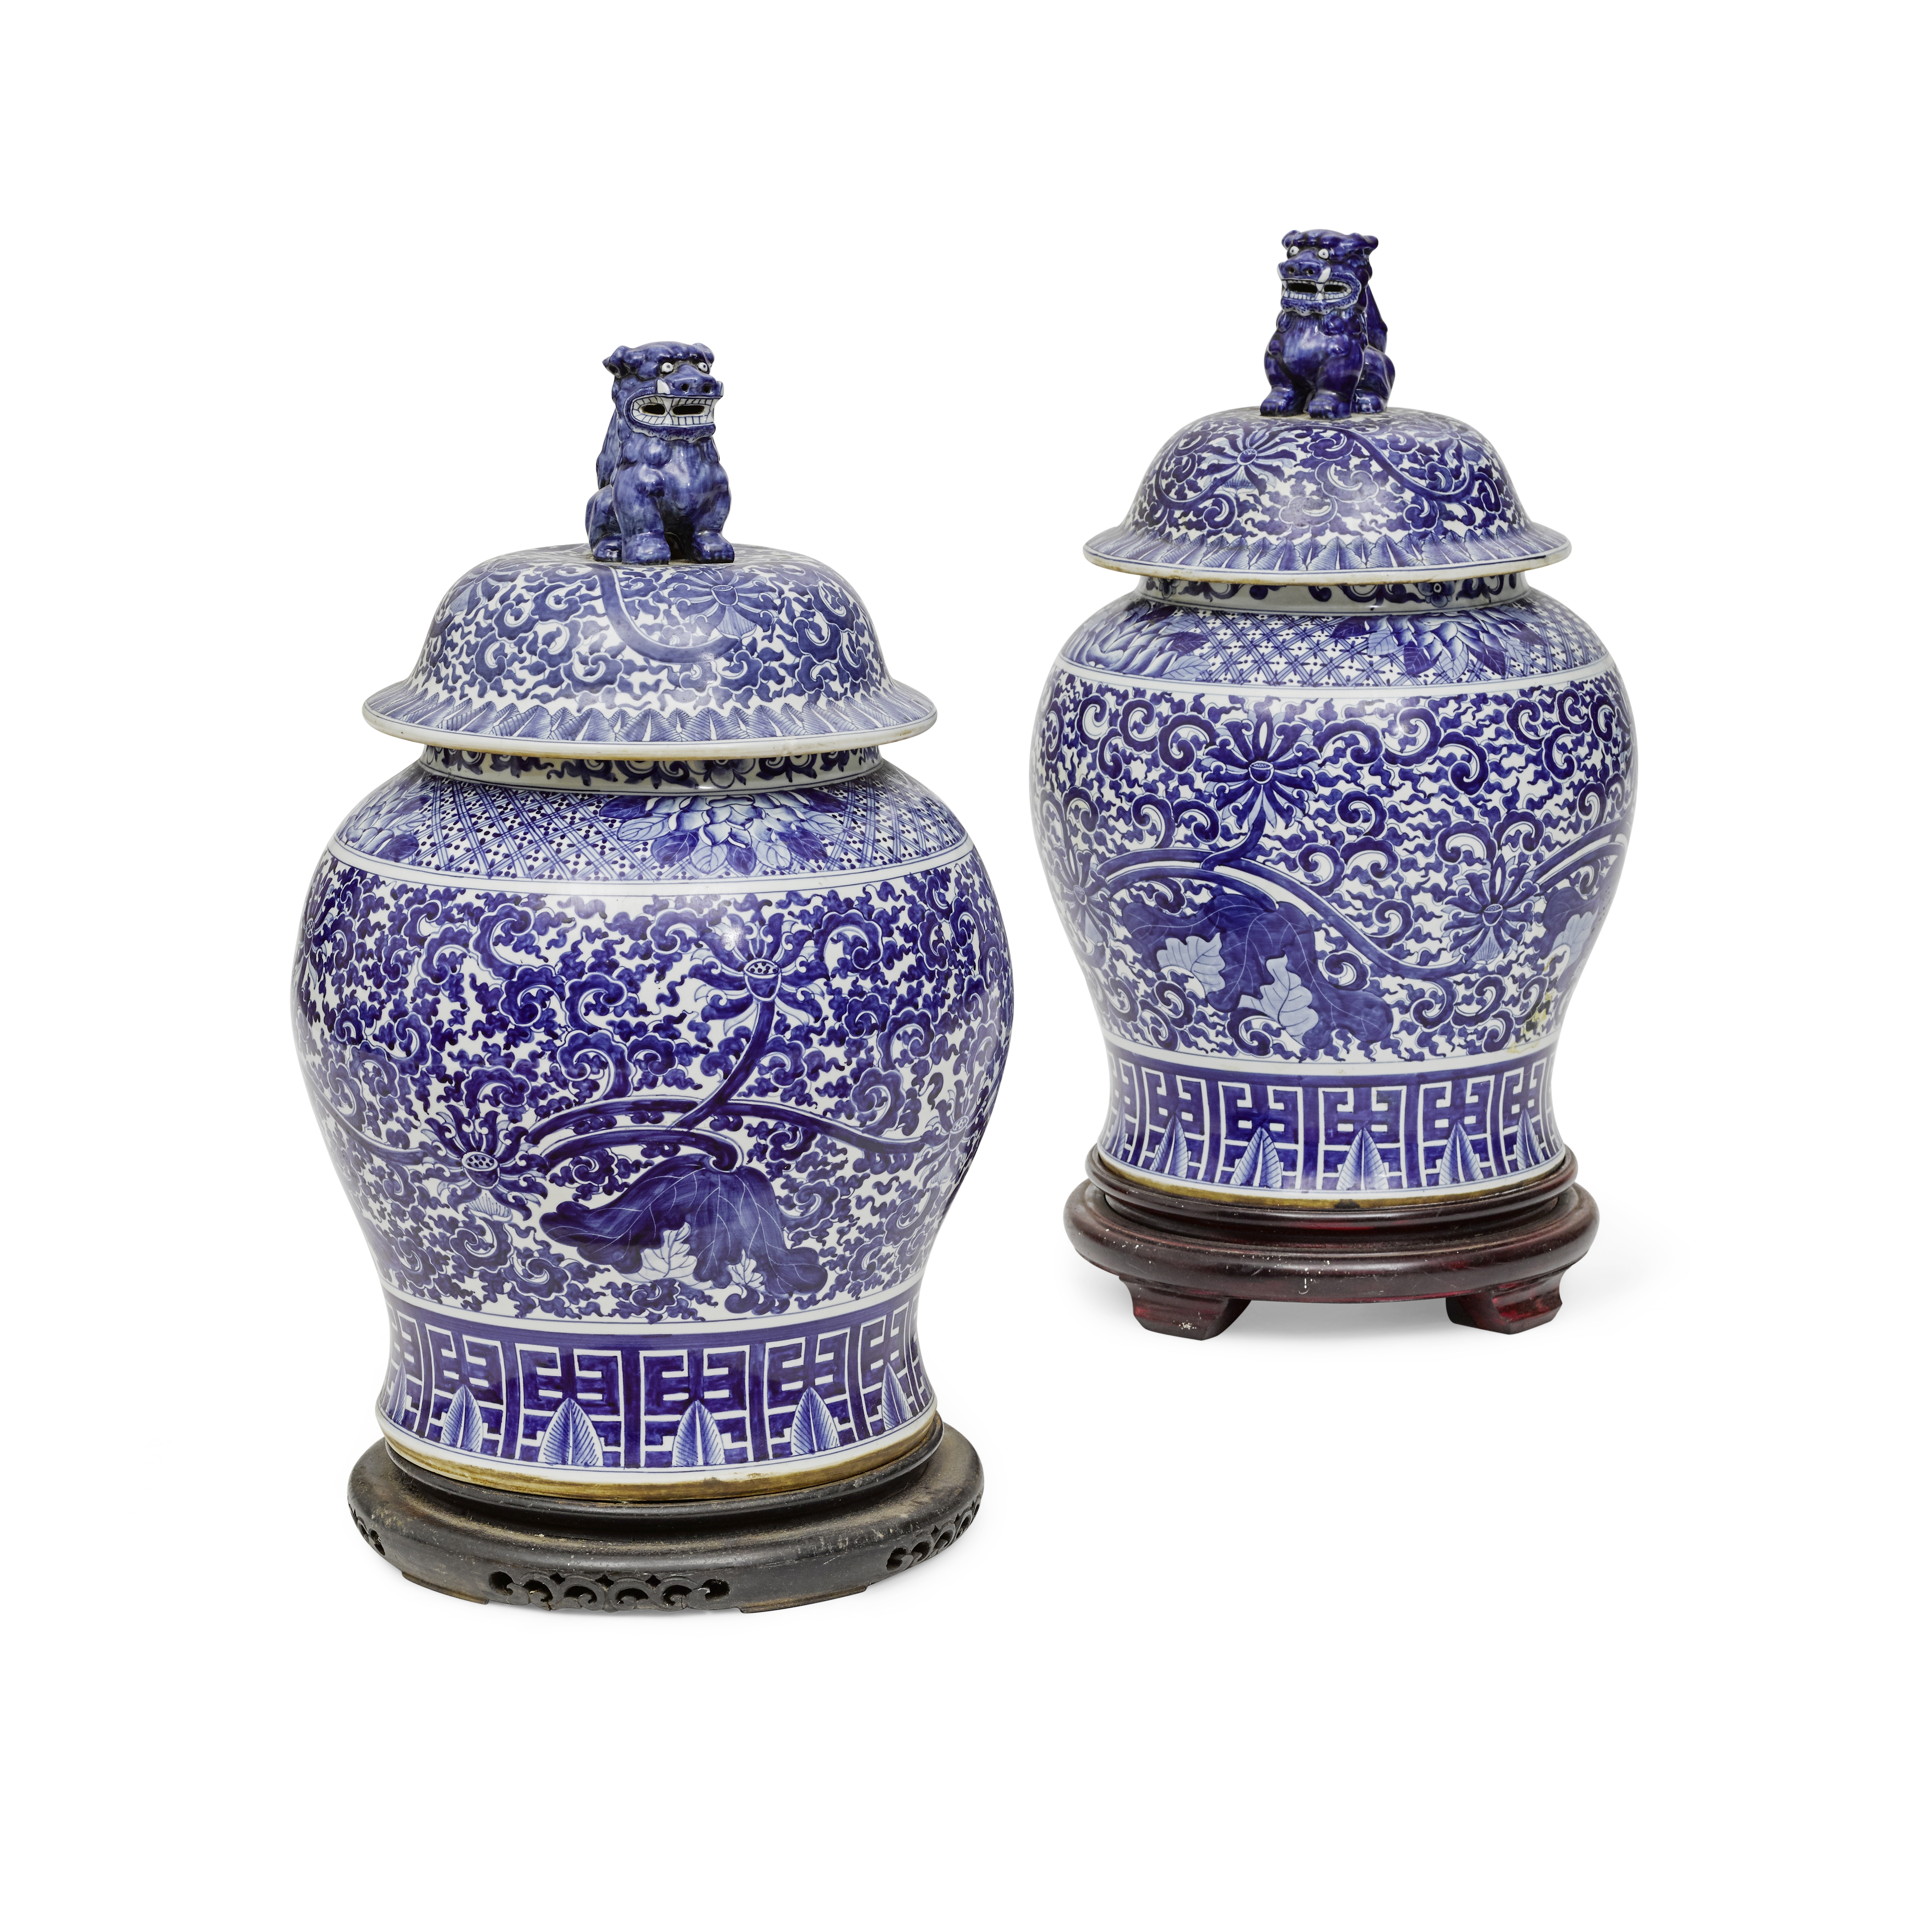 Lot 256 - A Group of Three Chinese Blue and White Porcelain Covered Jars Late 20th century